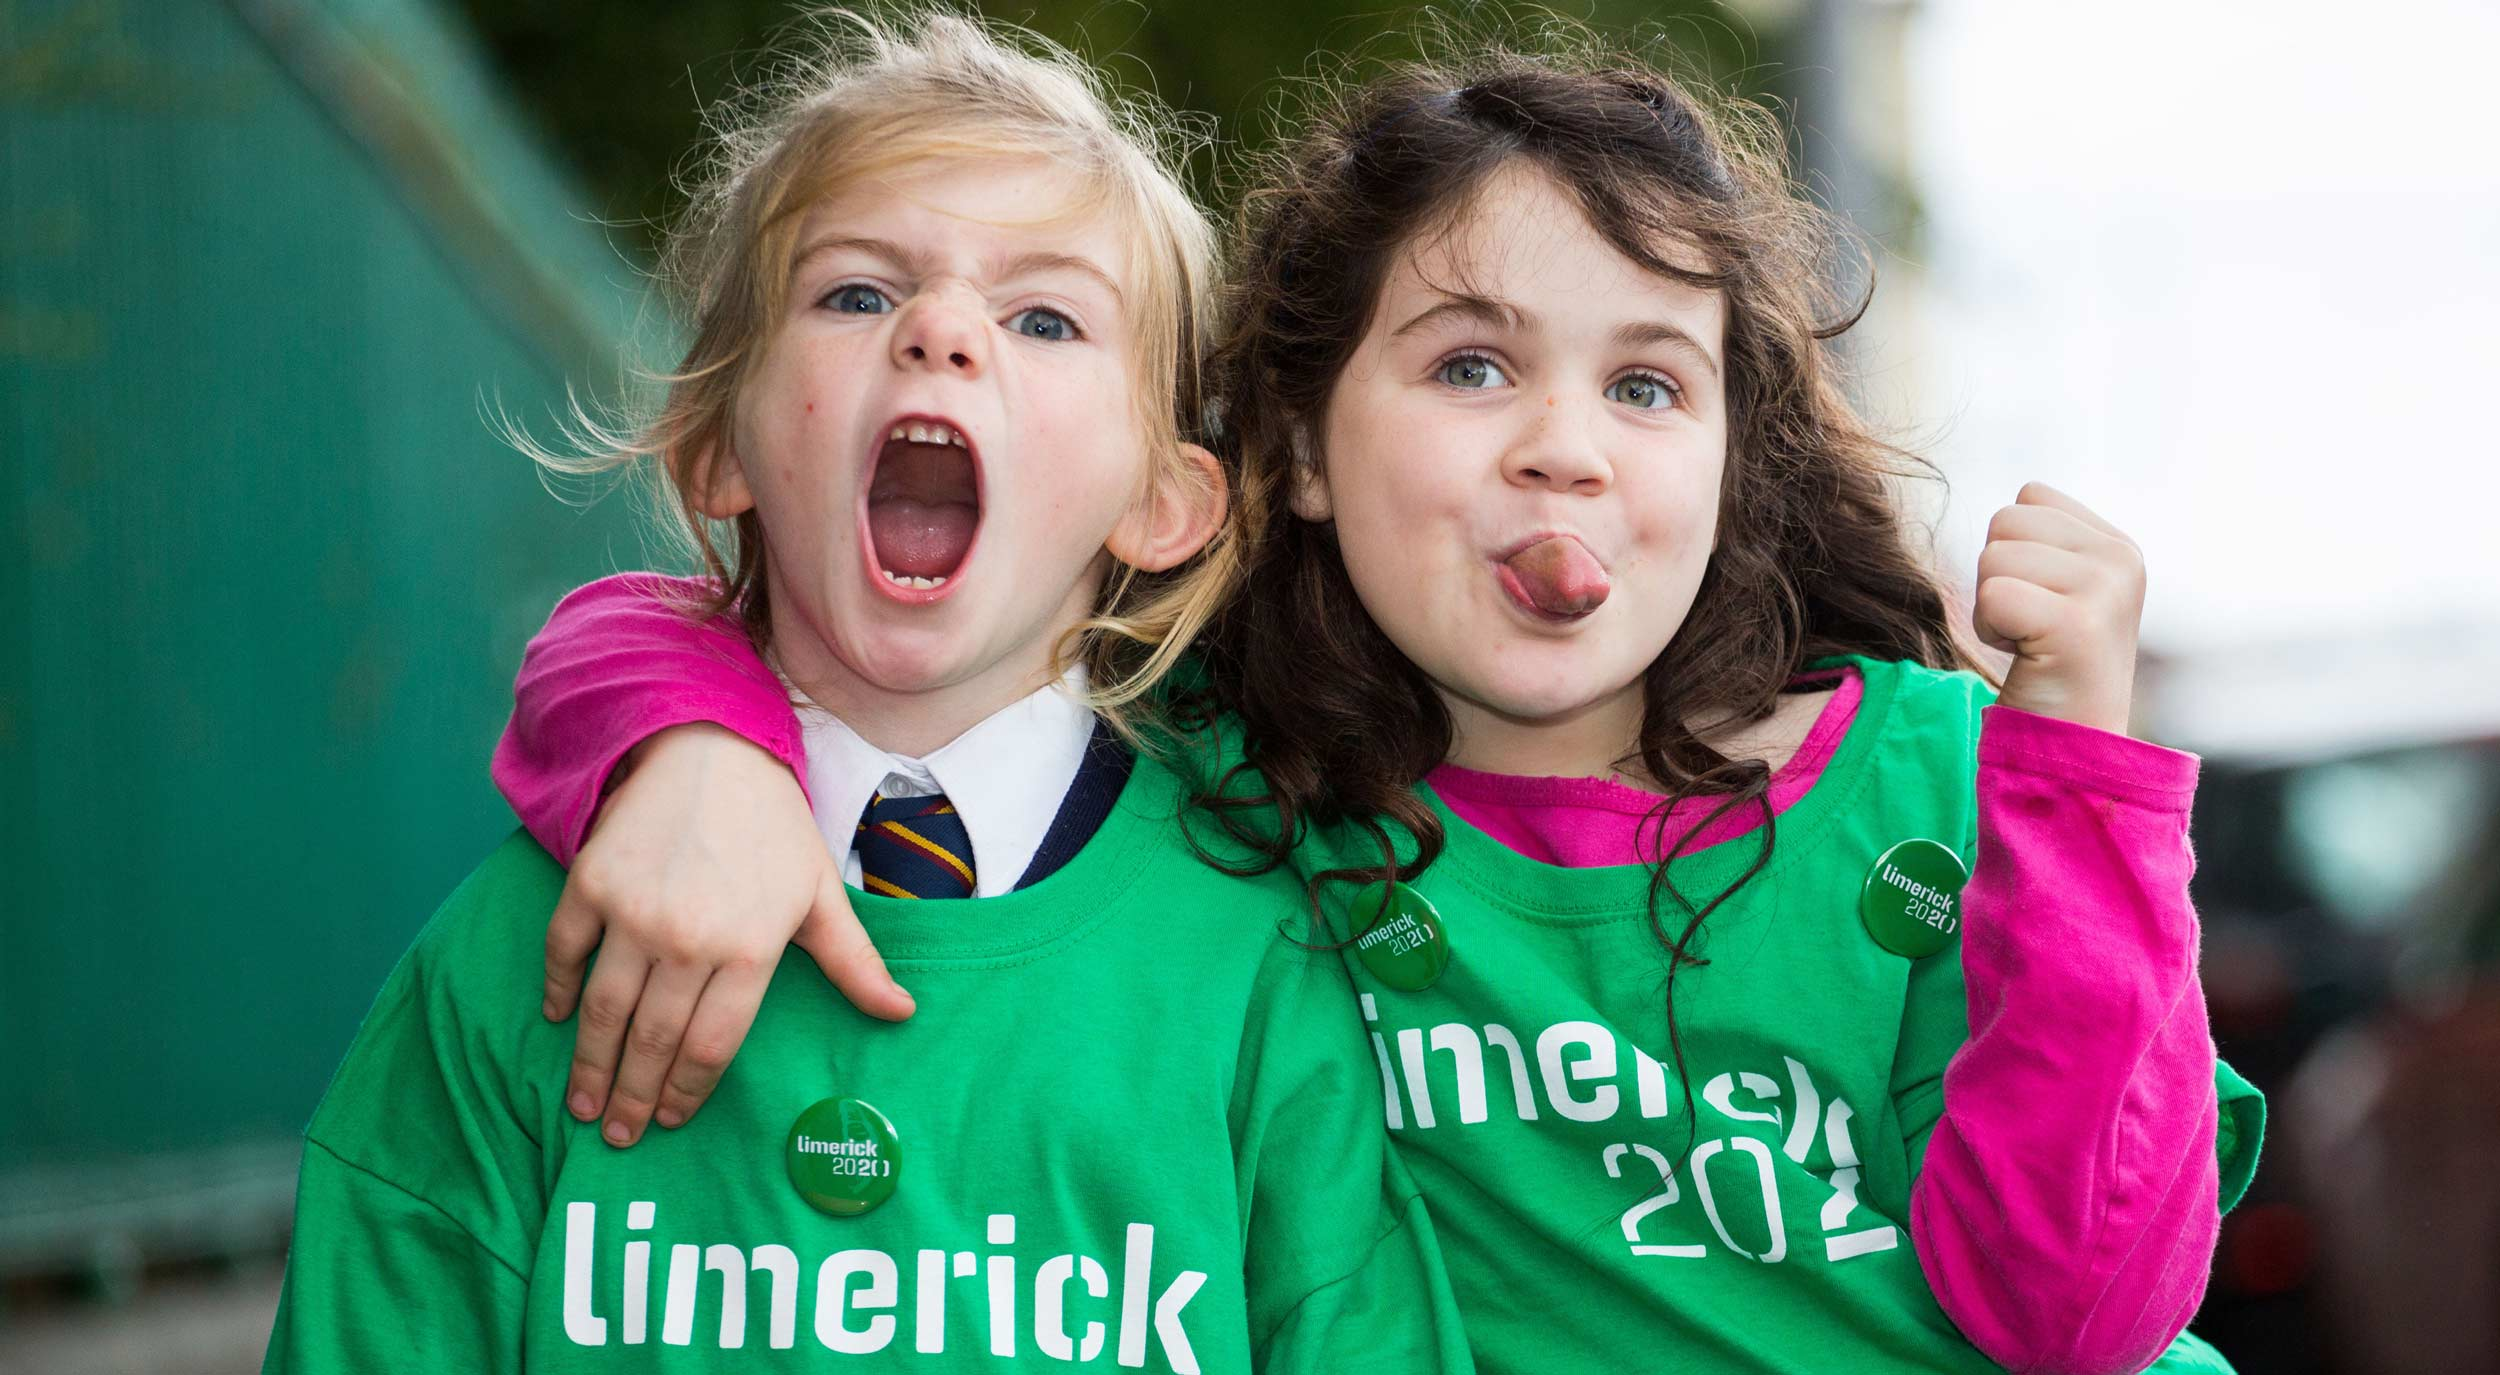 Limerick2020 Campaign Photography Production